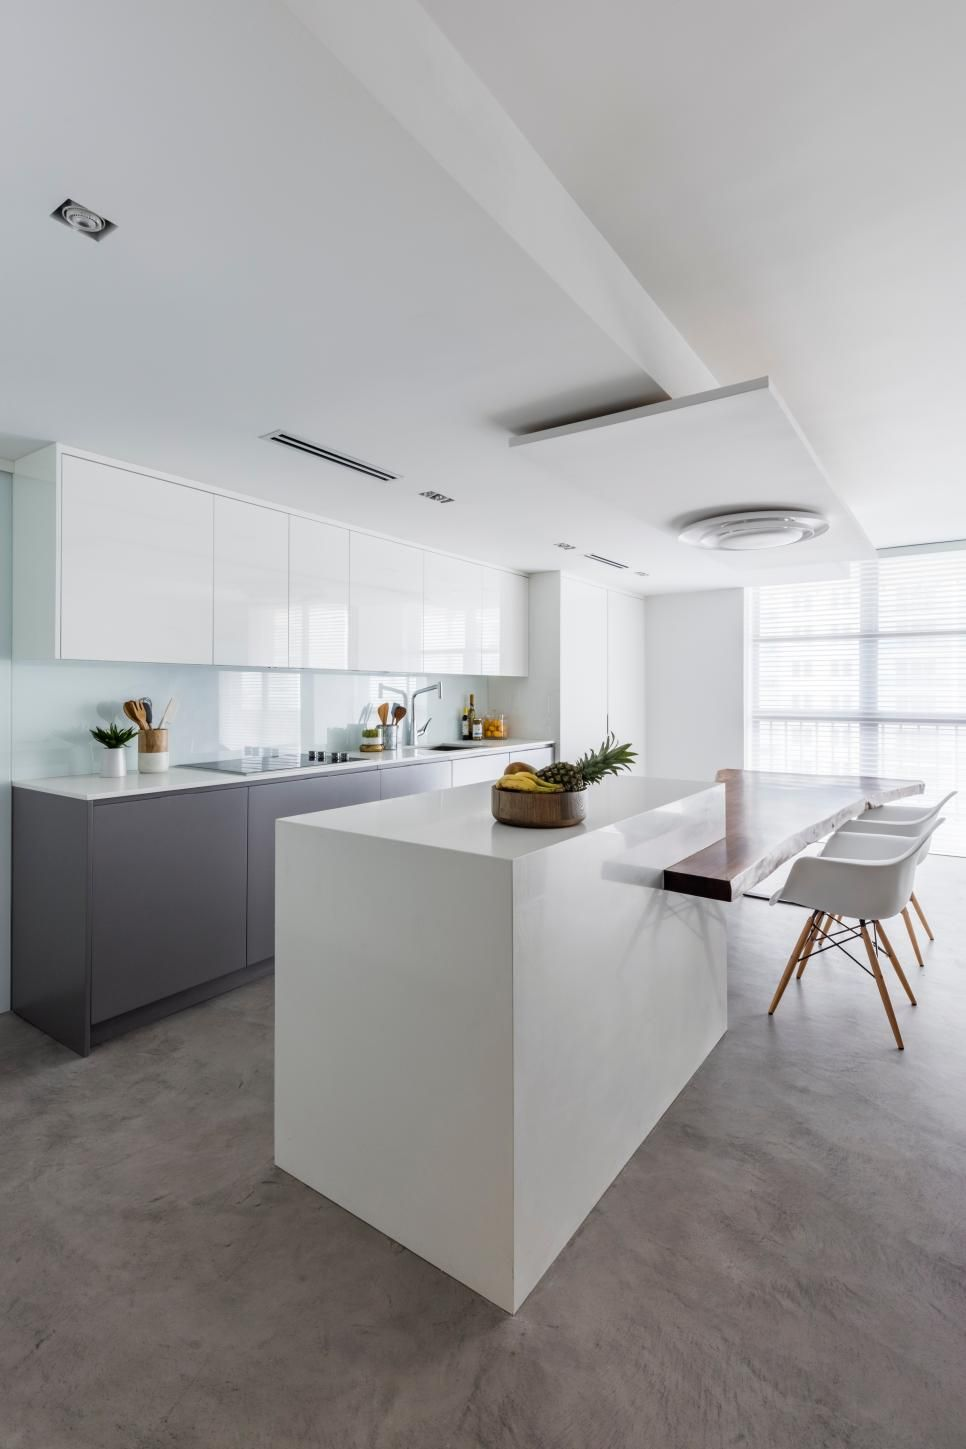 Glossy White Cabinets Without Knobs Or Handles Create A Streamlined Look In  This Modern Kitchen.